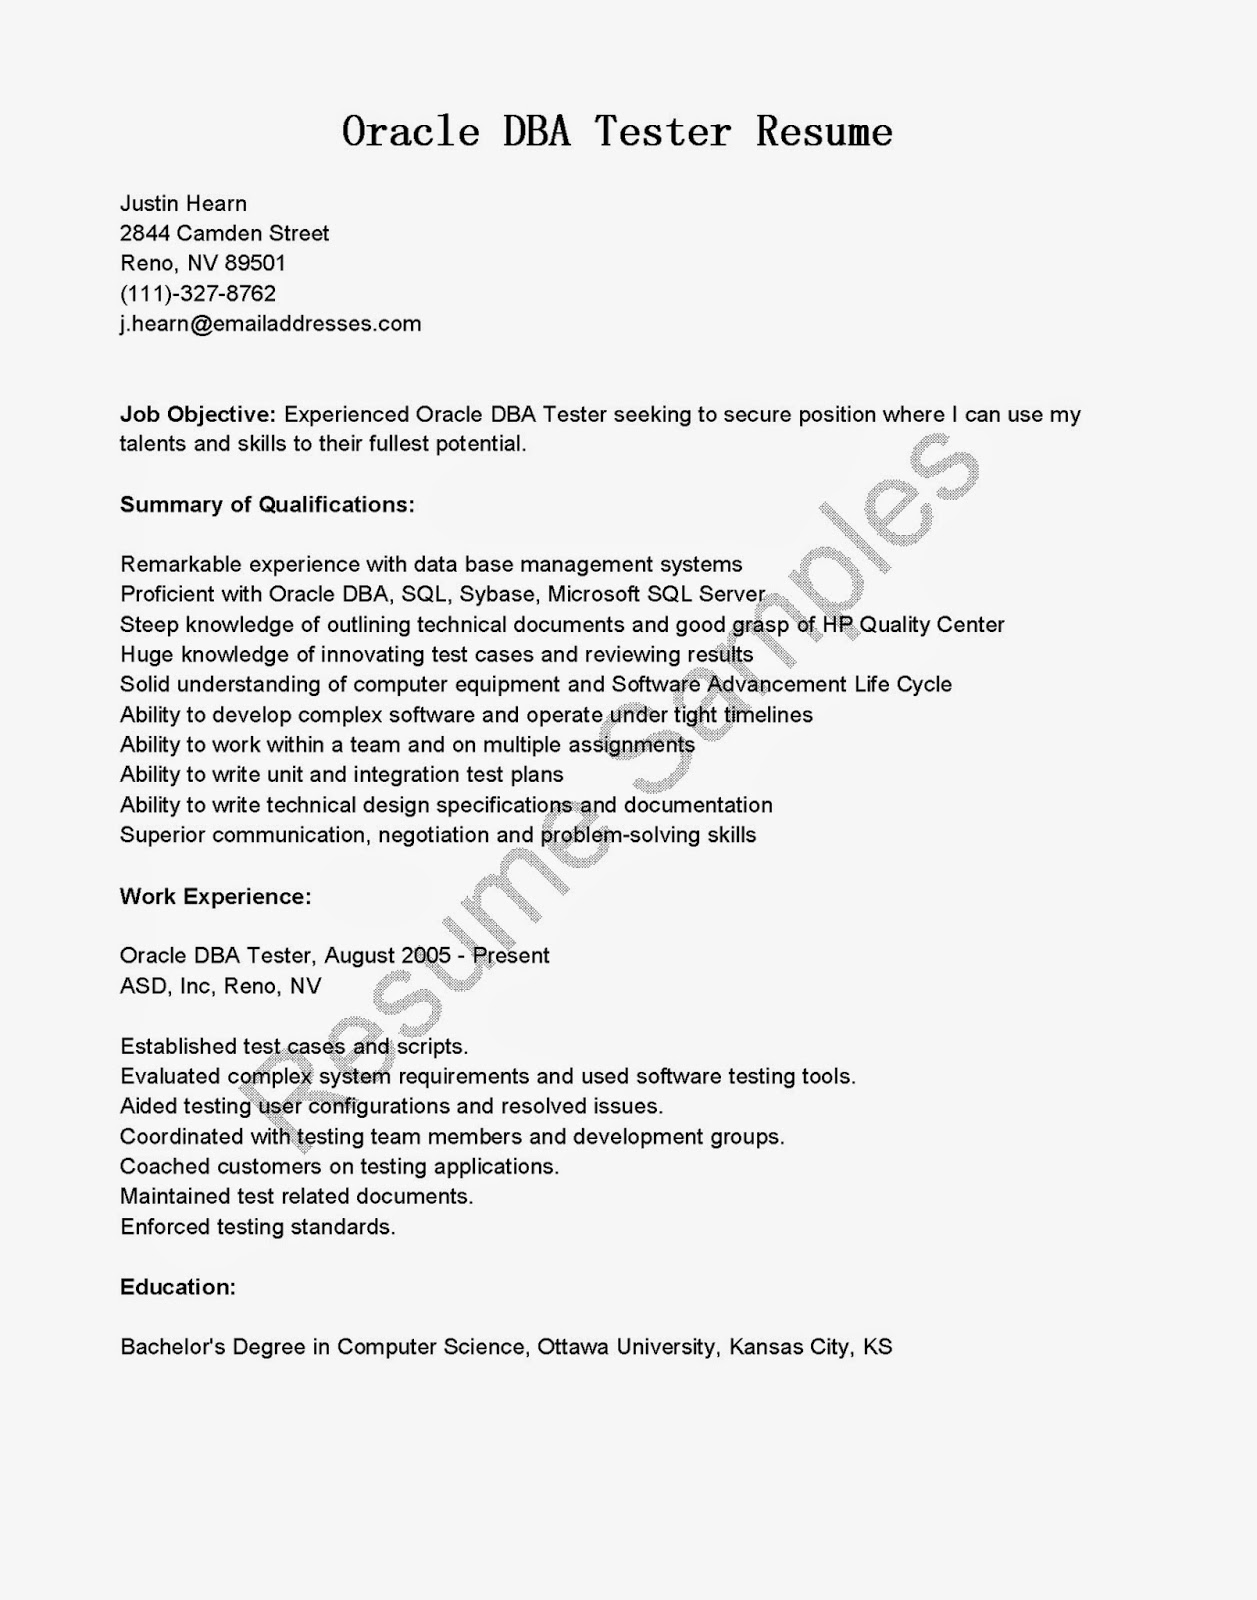 Software Engineer Sample Resume Cover Letter Help Non Profit An Expert Resume  Database Developer Resume Resumes  Database Developer Resume